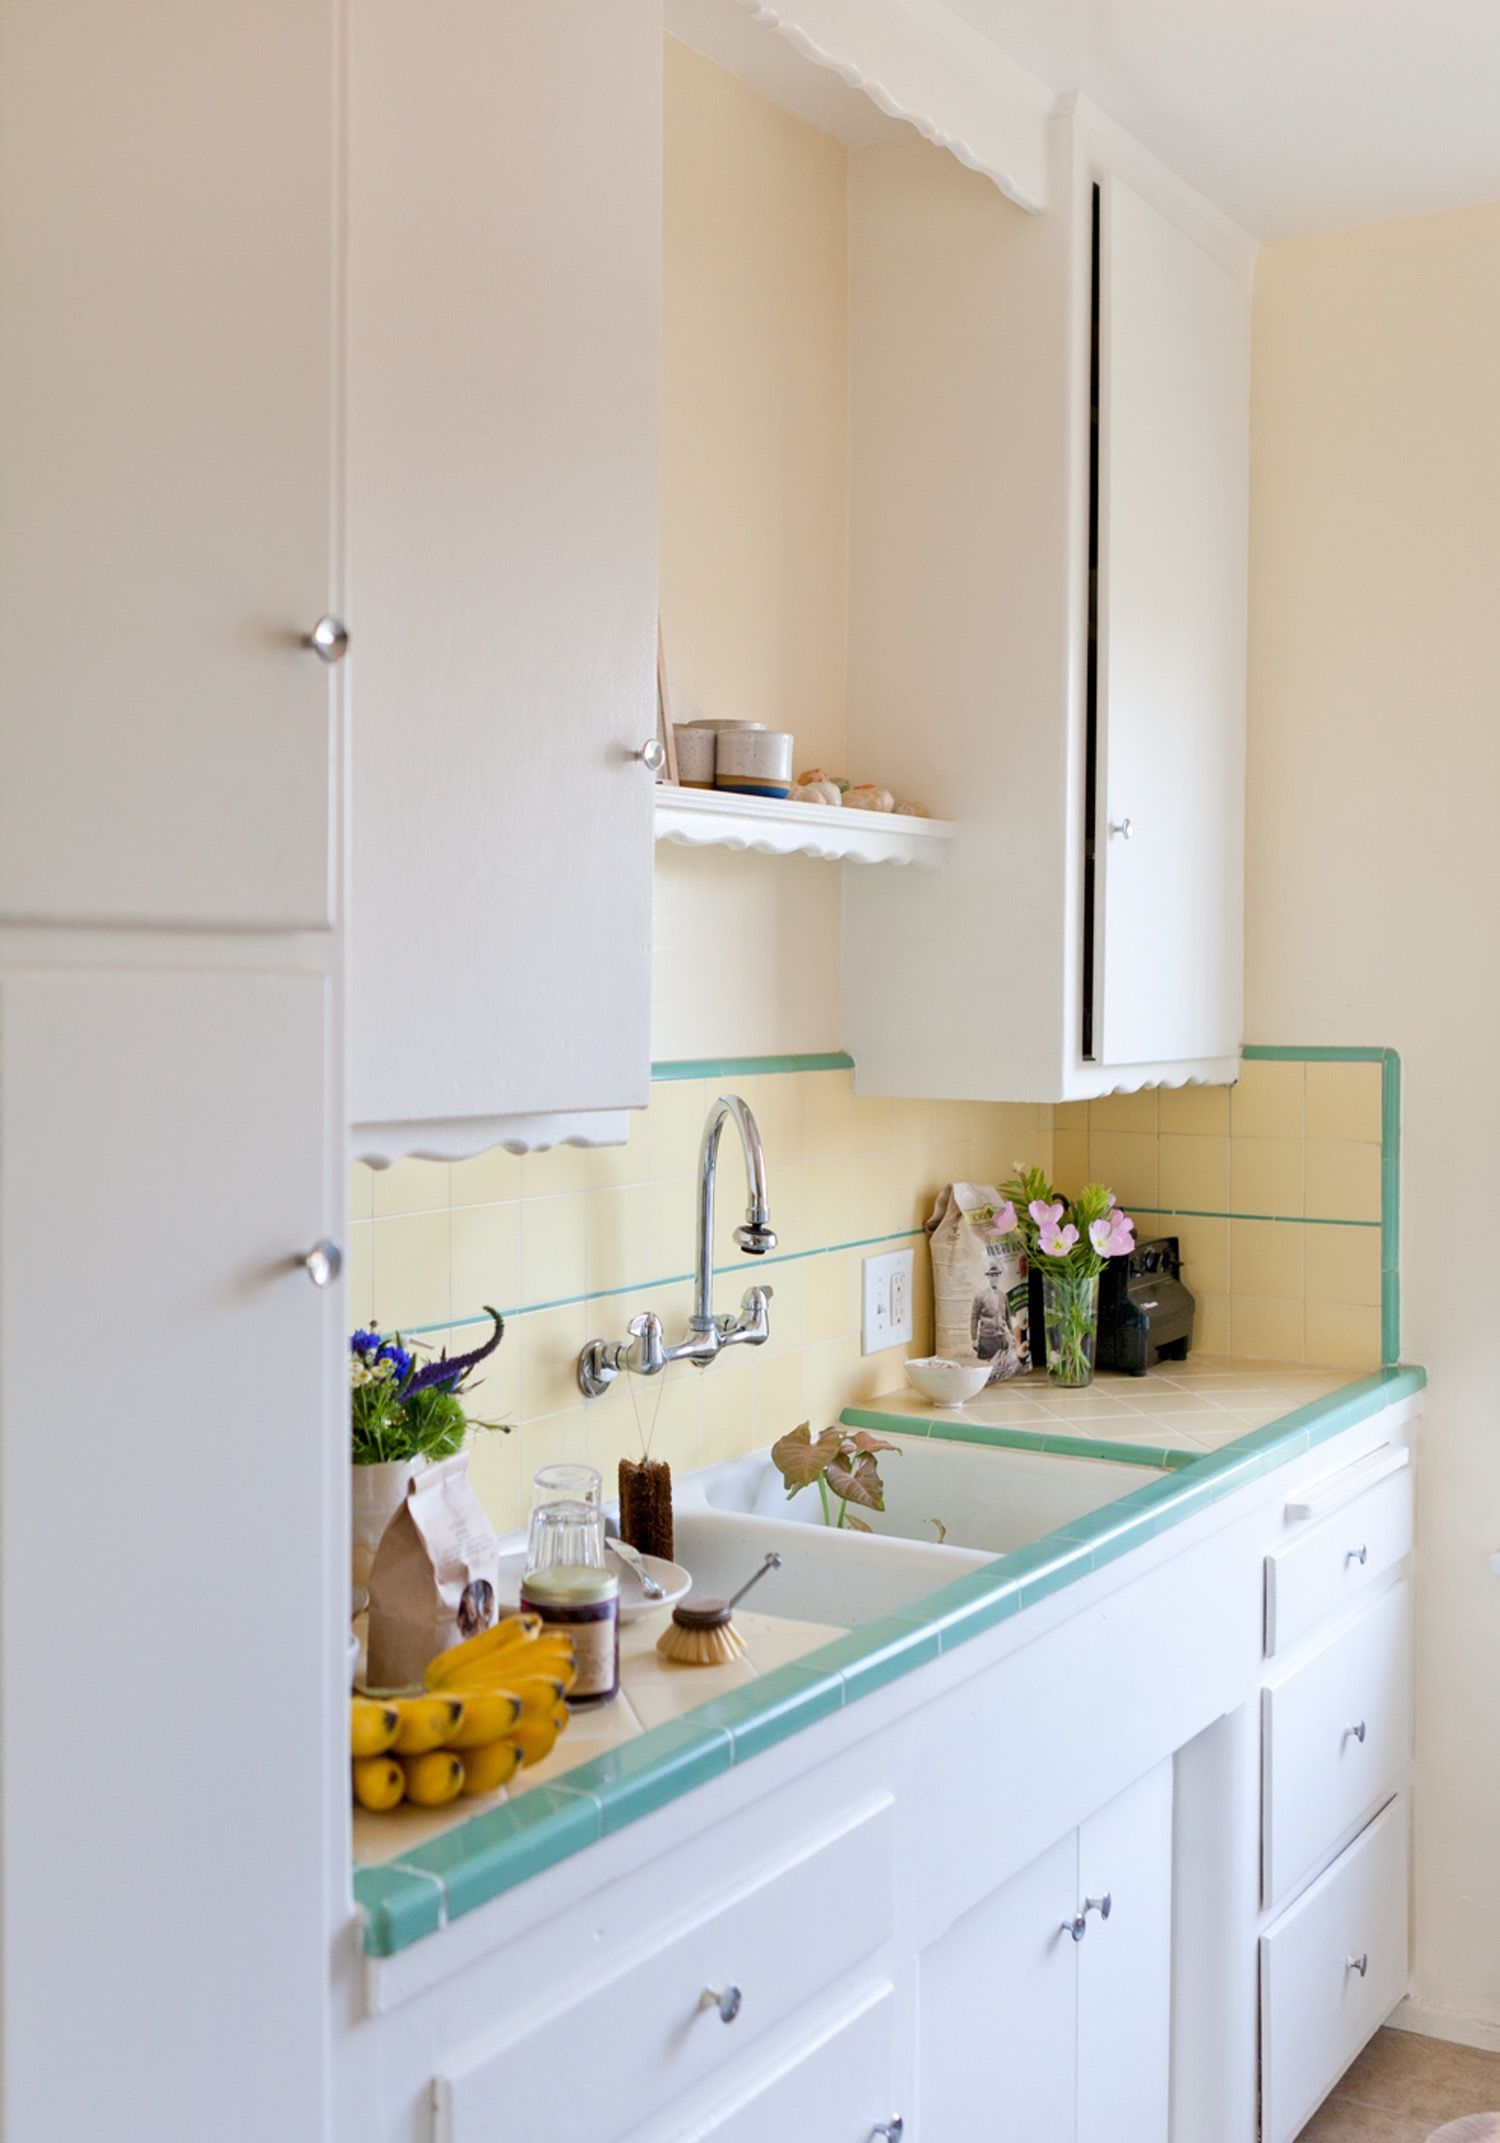 The Best Ways To Get Sticky Cooking Grease Off Cupboards Small Space Kitchen Clean Kitchen Cabinets Kitchen Space